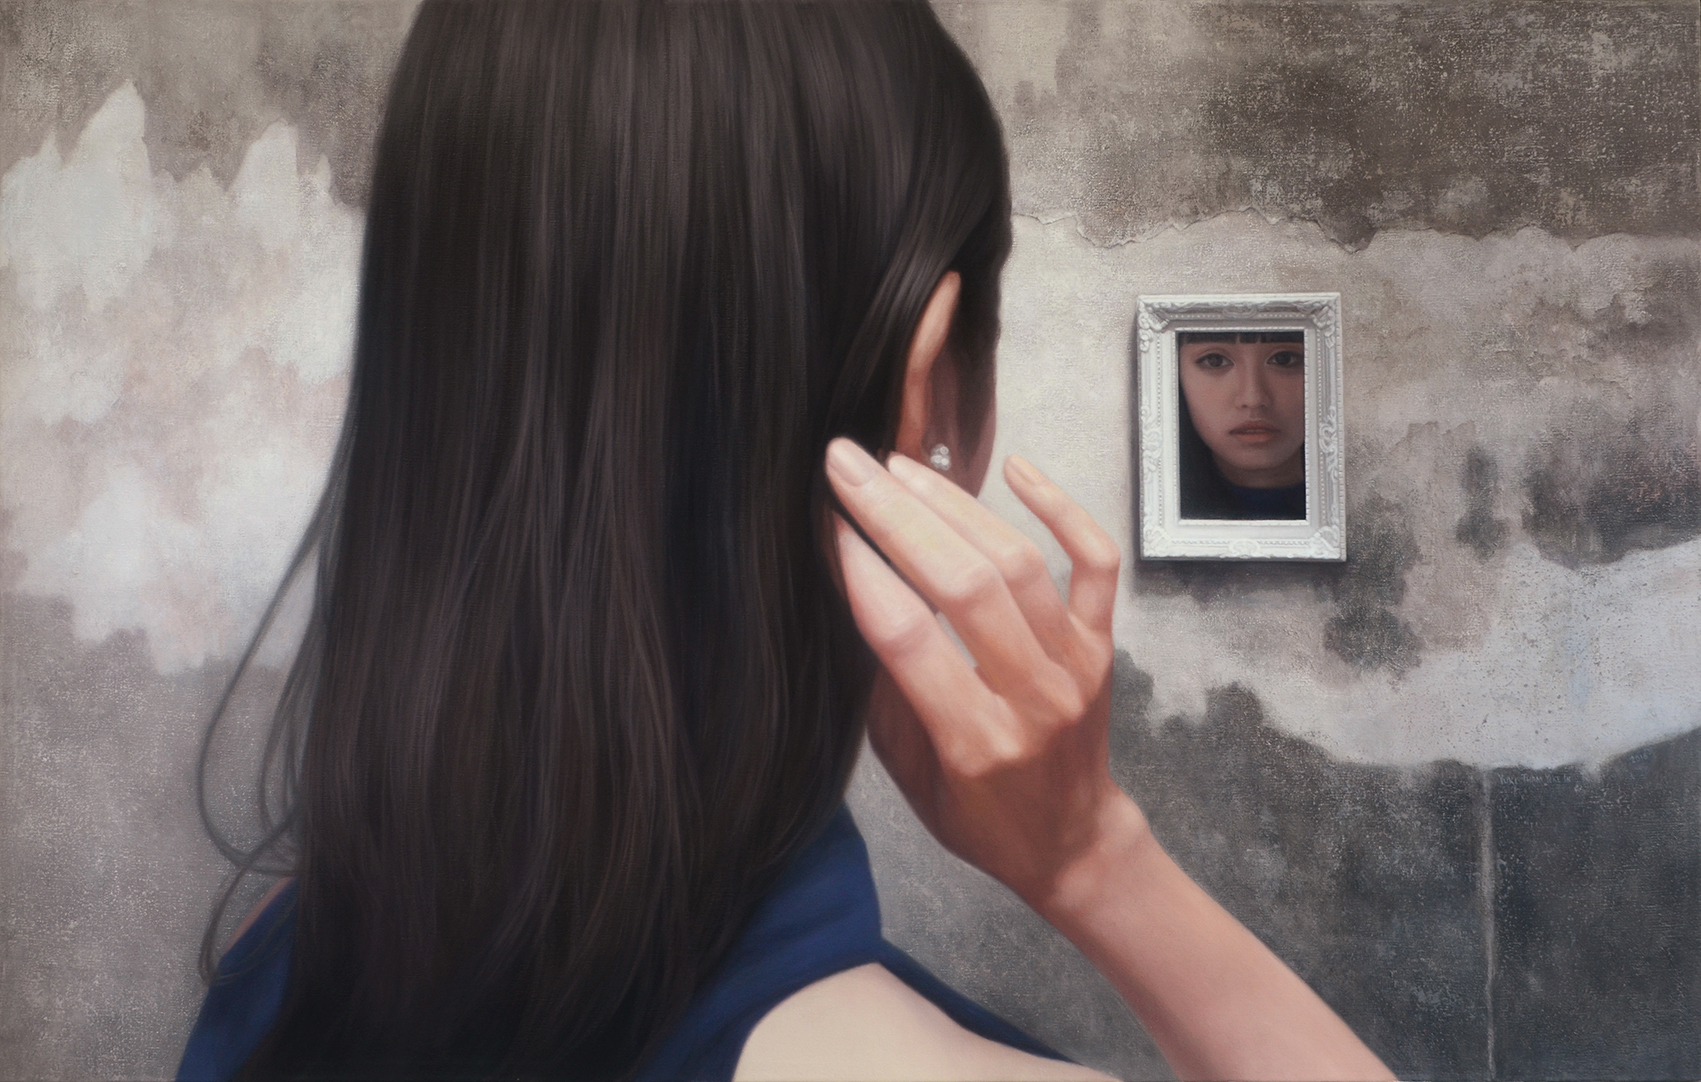 Who is in the mirror